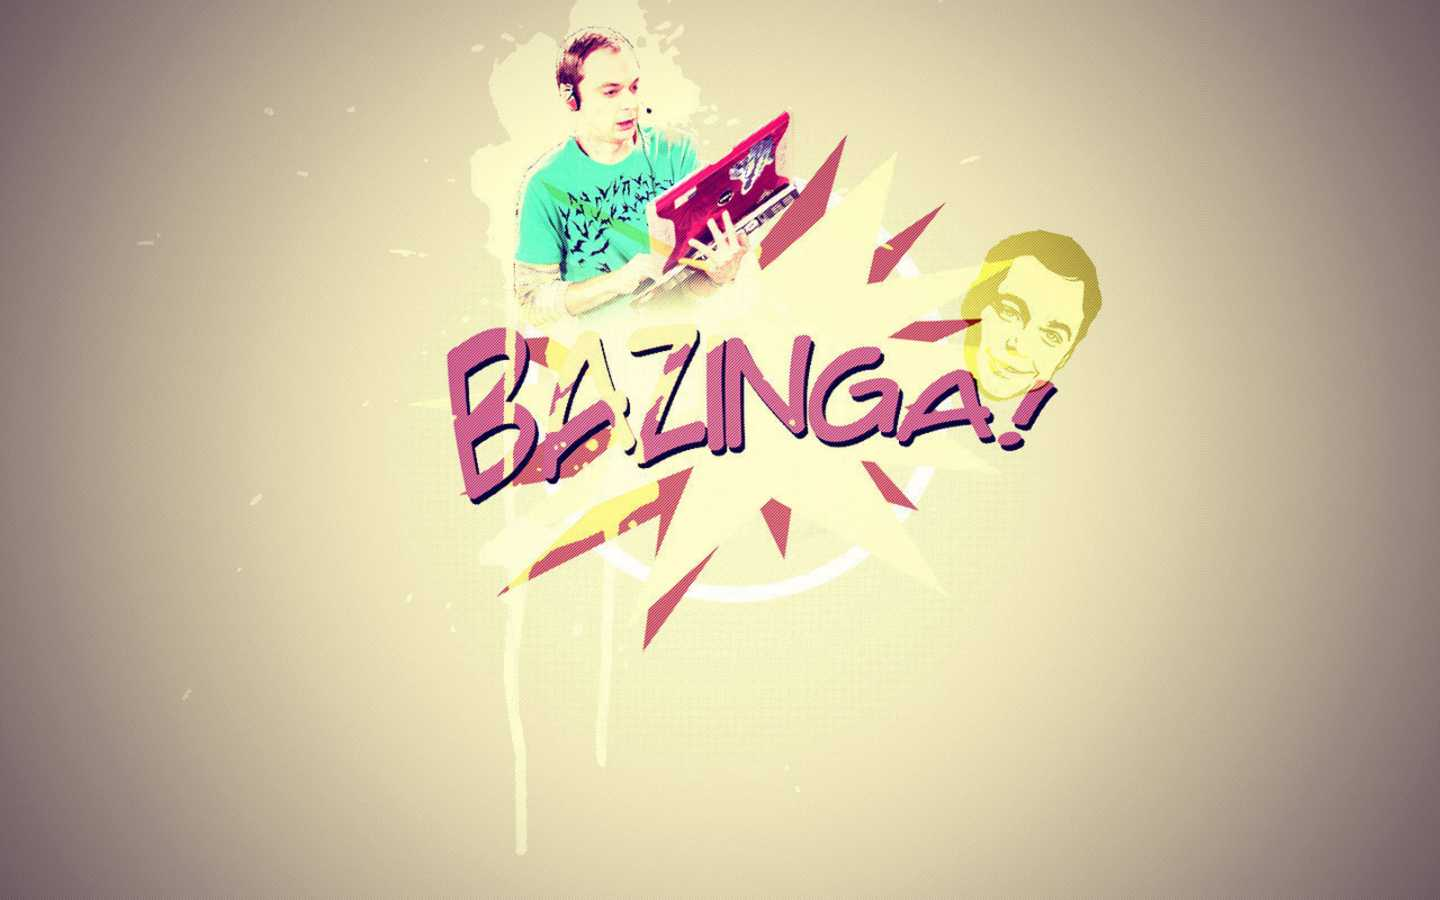 http://1.bp.blogspot.com/-hHcVqIPmkck/UNco8Aa3fTI/AAAAAAAAo6E/FEtqx8a2pdI/s1600/1440x900+Wallpaper+Desktop+-+The+big+bang+theory+-+19706_the_big_bang_theory_sheldon__bazinga.jpg